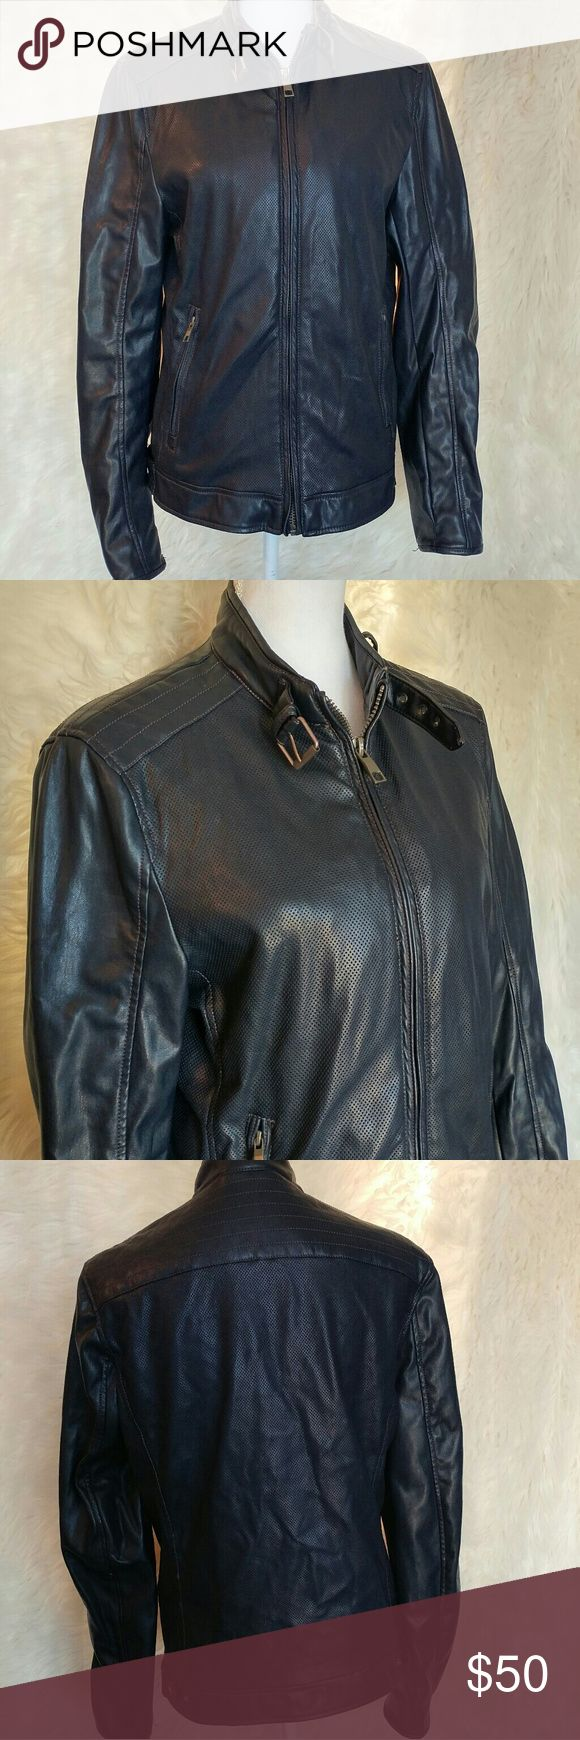 """Zara Man faux leather moto jacket Excellent pre owned condition Zara jacket for men Size medium Zipper down front Zipper pockets inside and outside of jacket Buckle detail on neck Perforated style front and back Slim fit  Pit to pit 20""""  Length 26"""" Sleeves 27""""  Shoulders 16.5"""" Zara Jackets & Coats"""